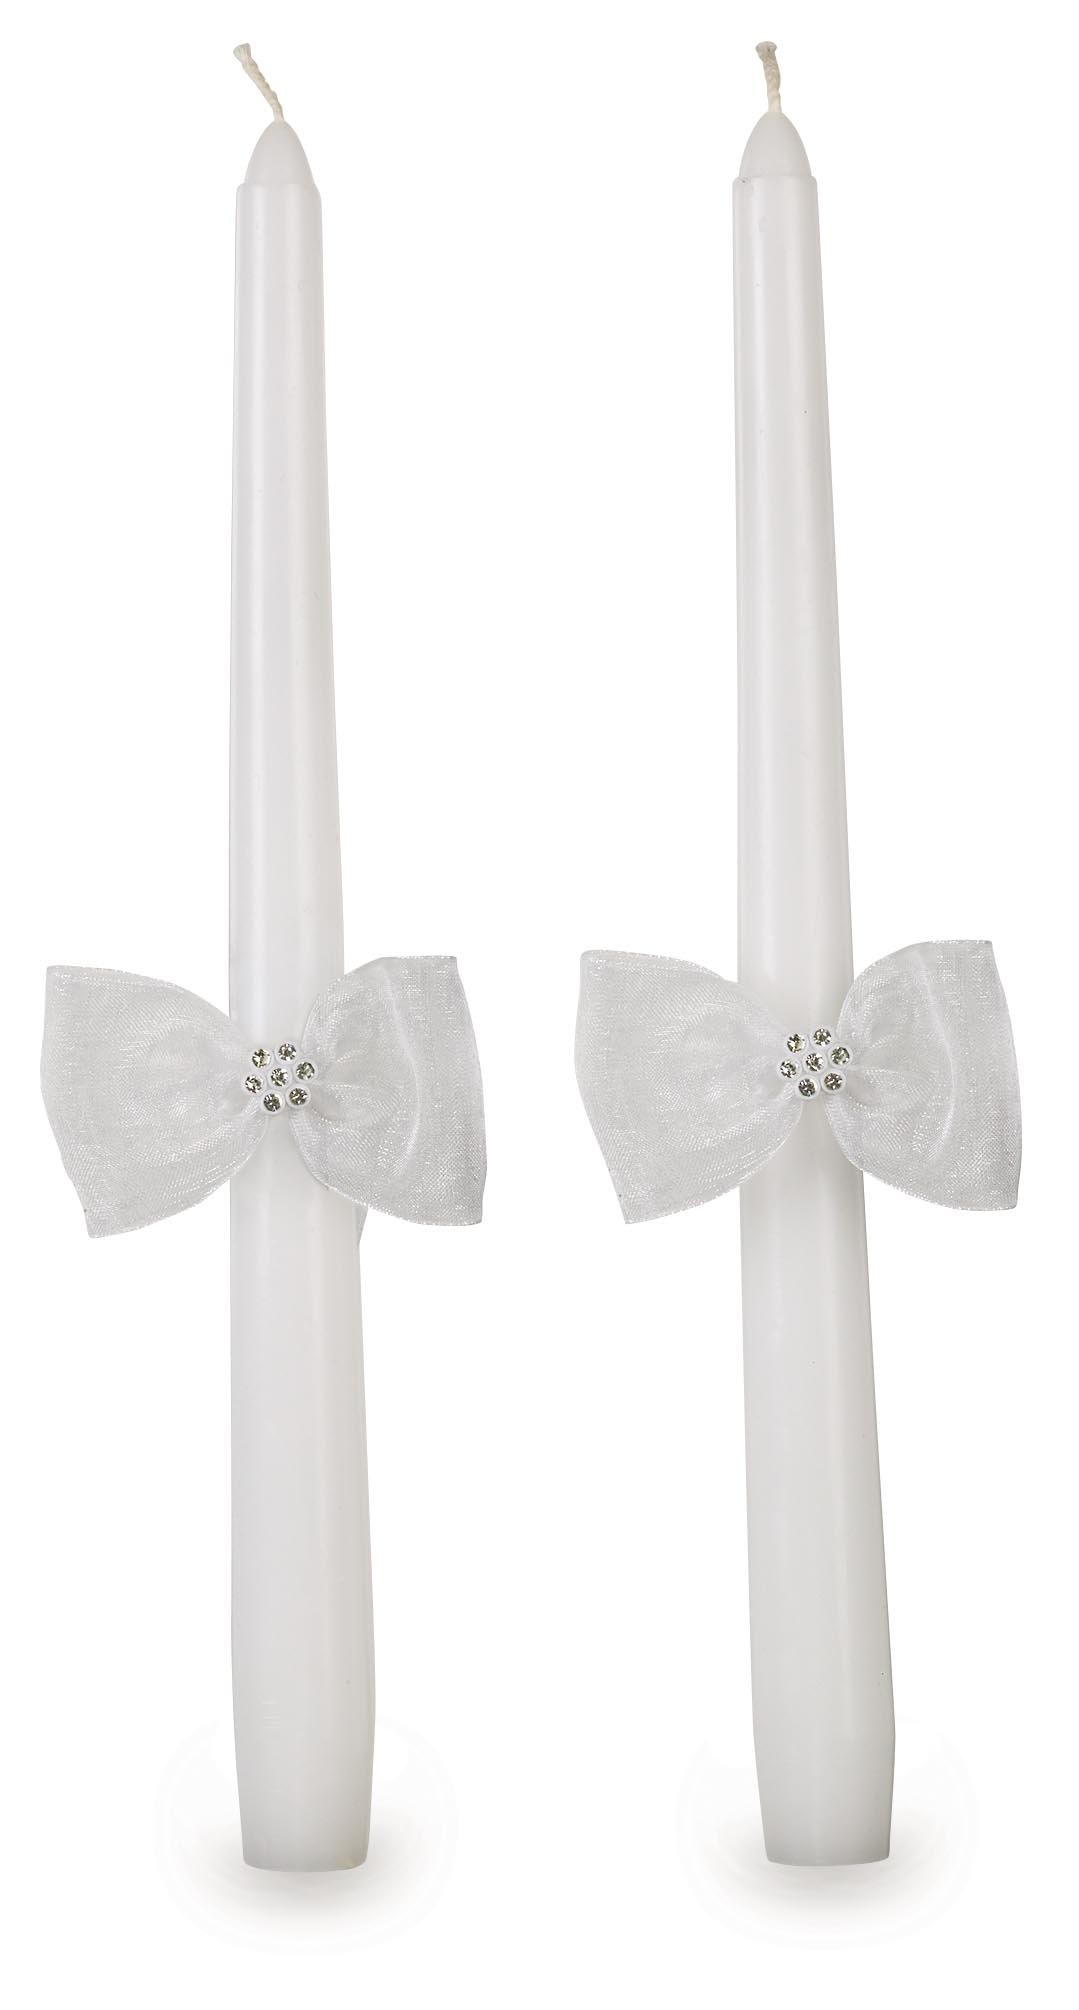 Wilton Graceful Wedding Day Collection Unity Candle and Taper Candles Set by Wilton (Image #2)